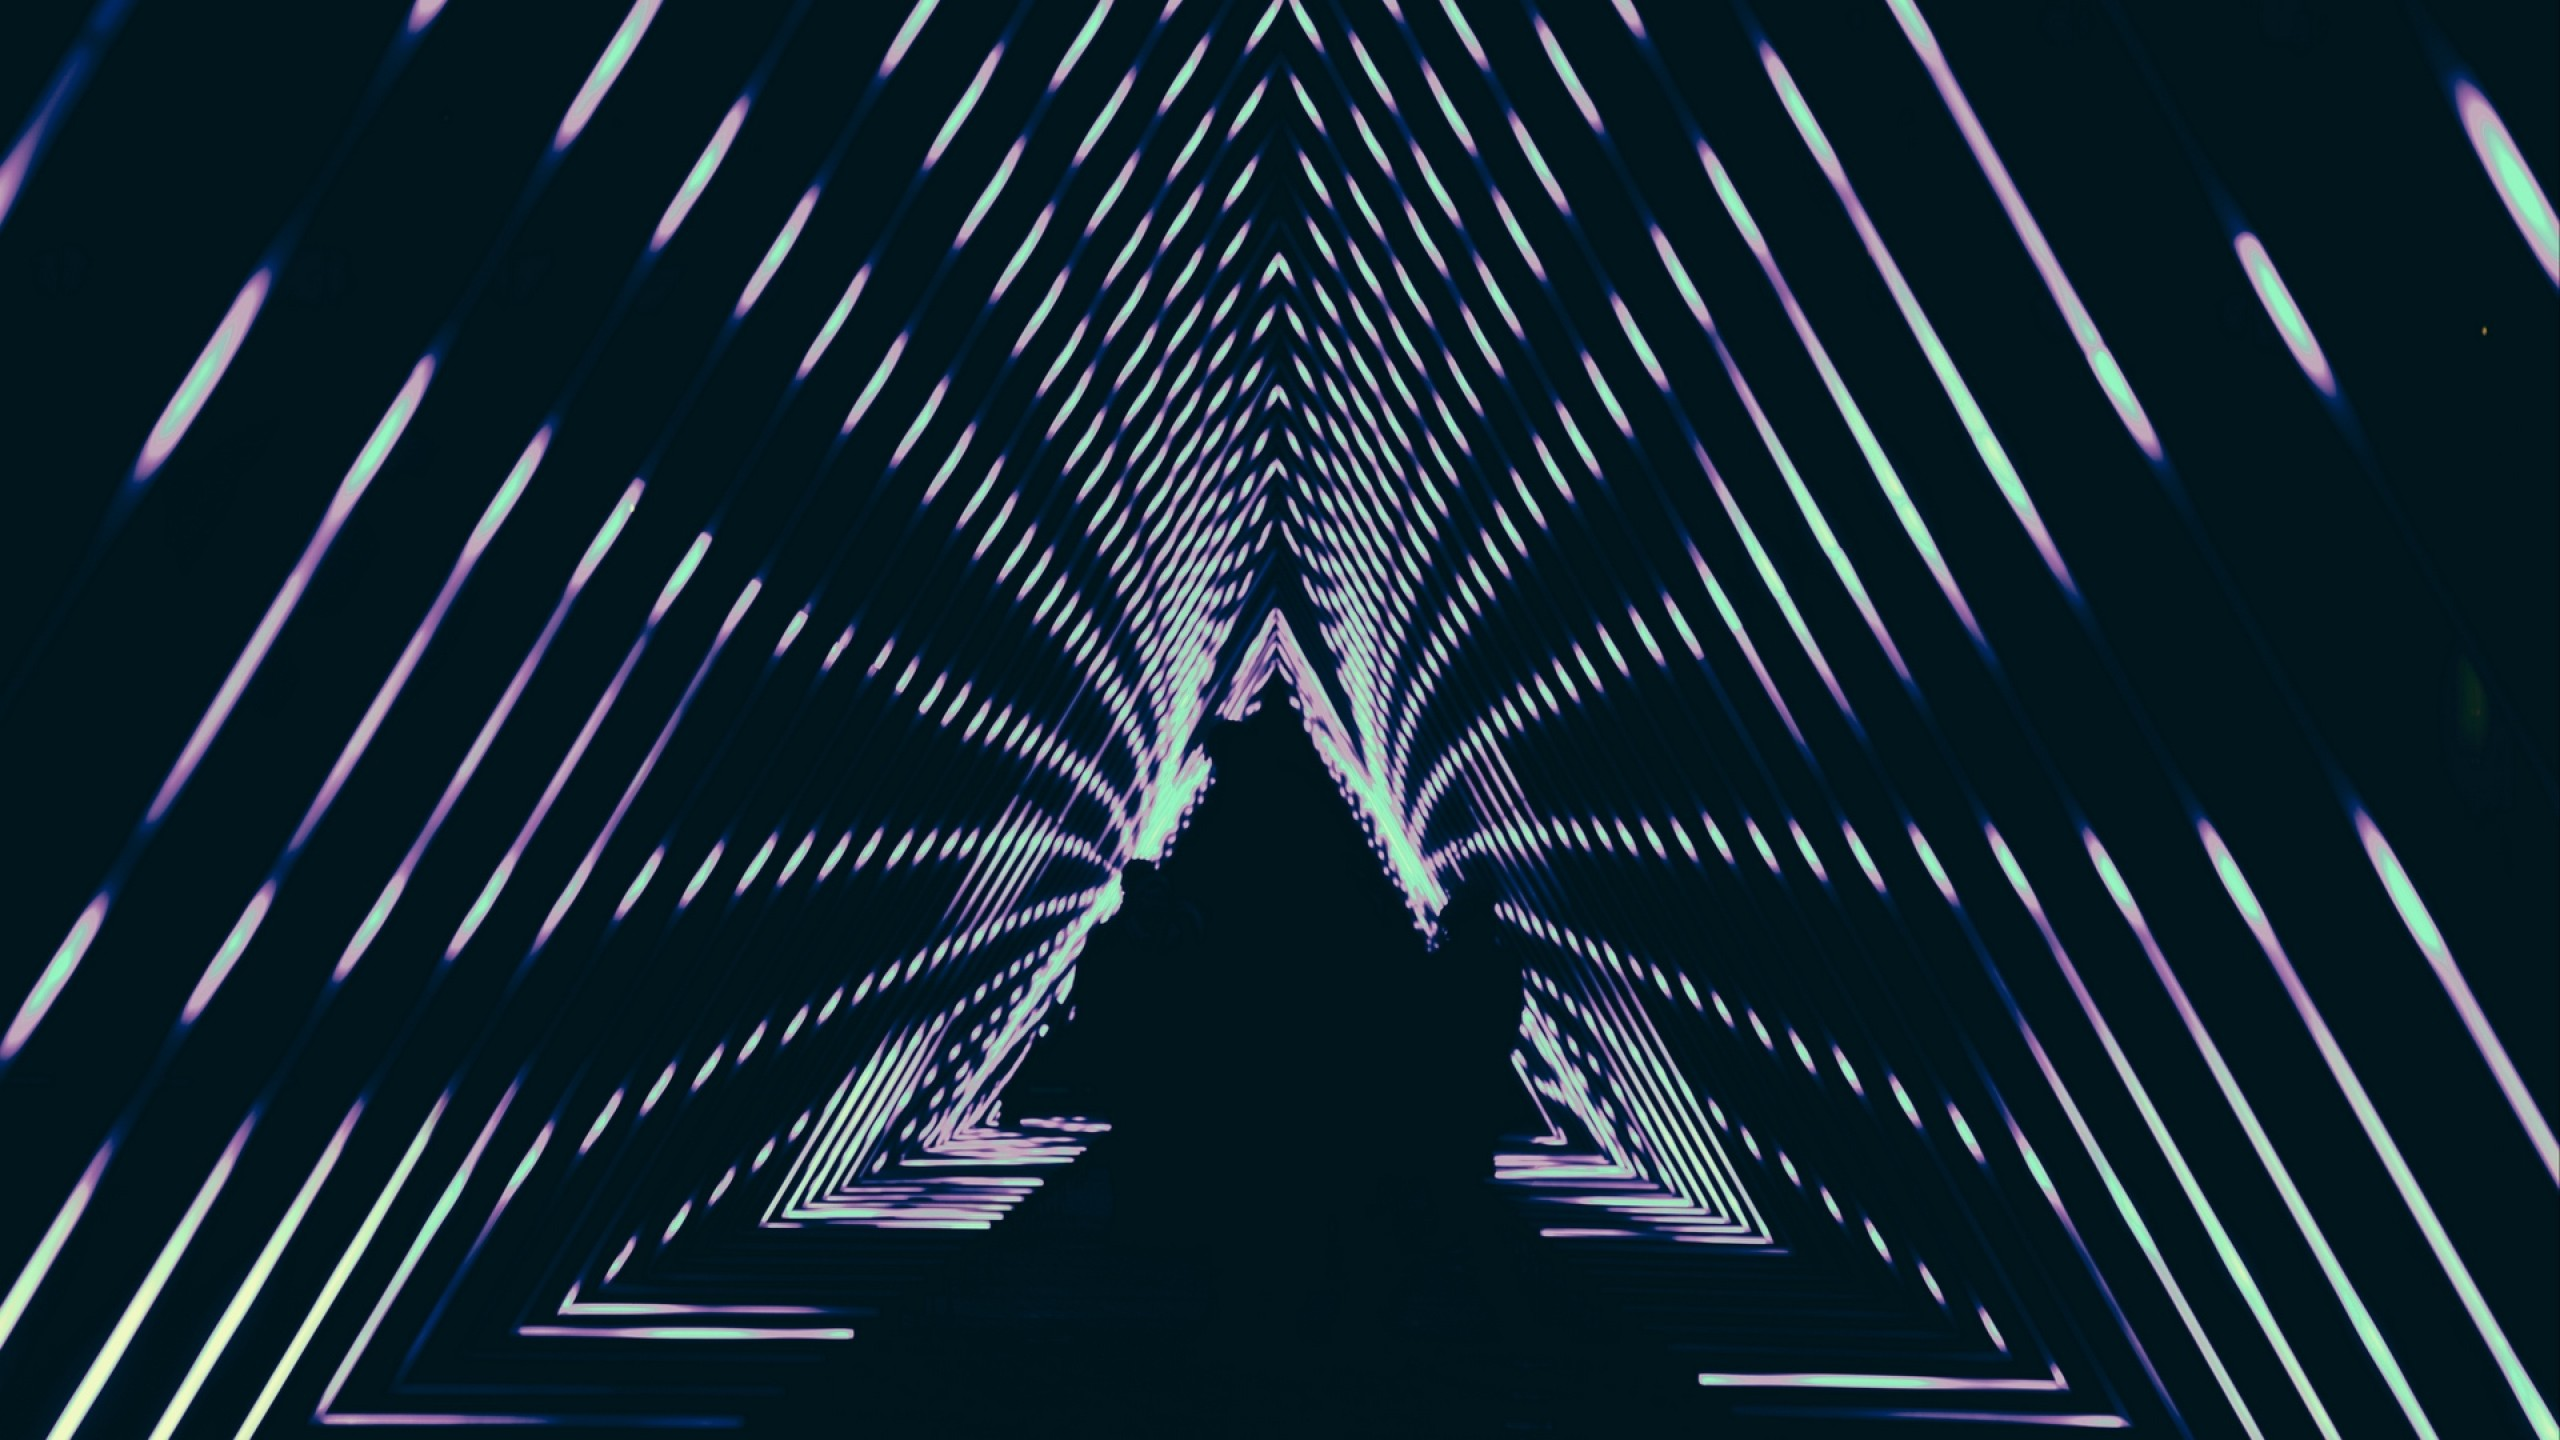 Geometric lines at the dark HD Wallpaper Youtube Cover Photo